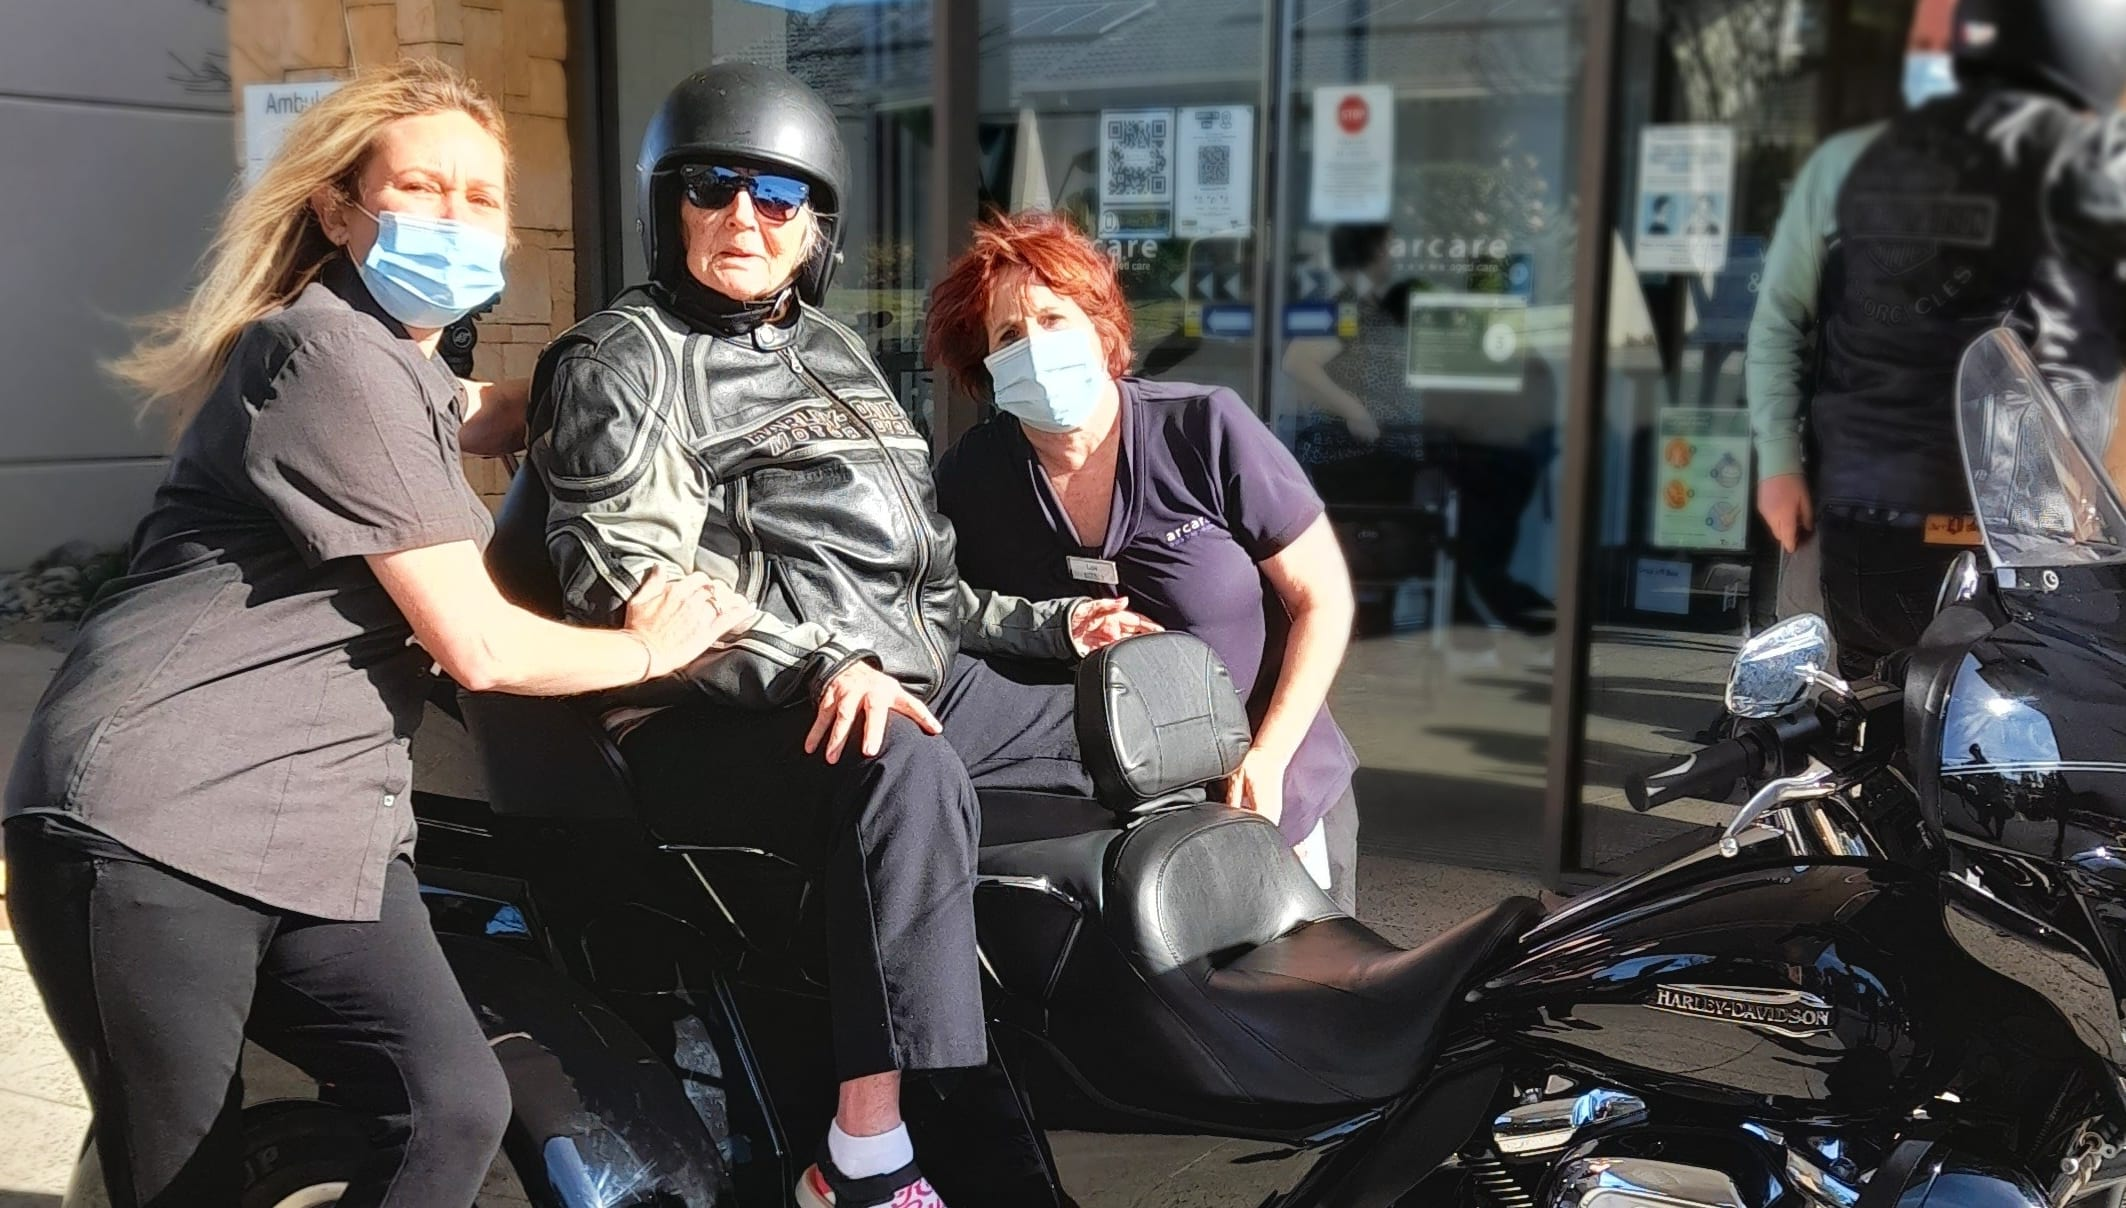 arcare_aged_care_knox_ethel_harley_ride